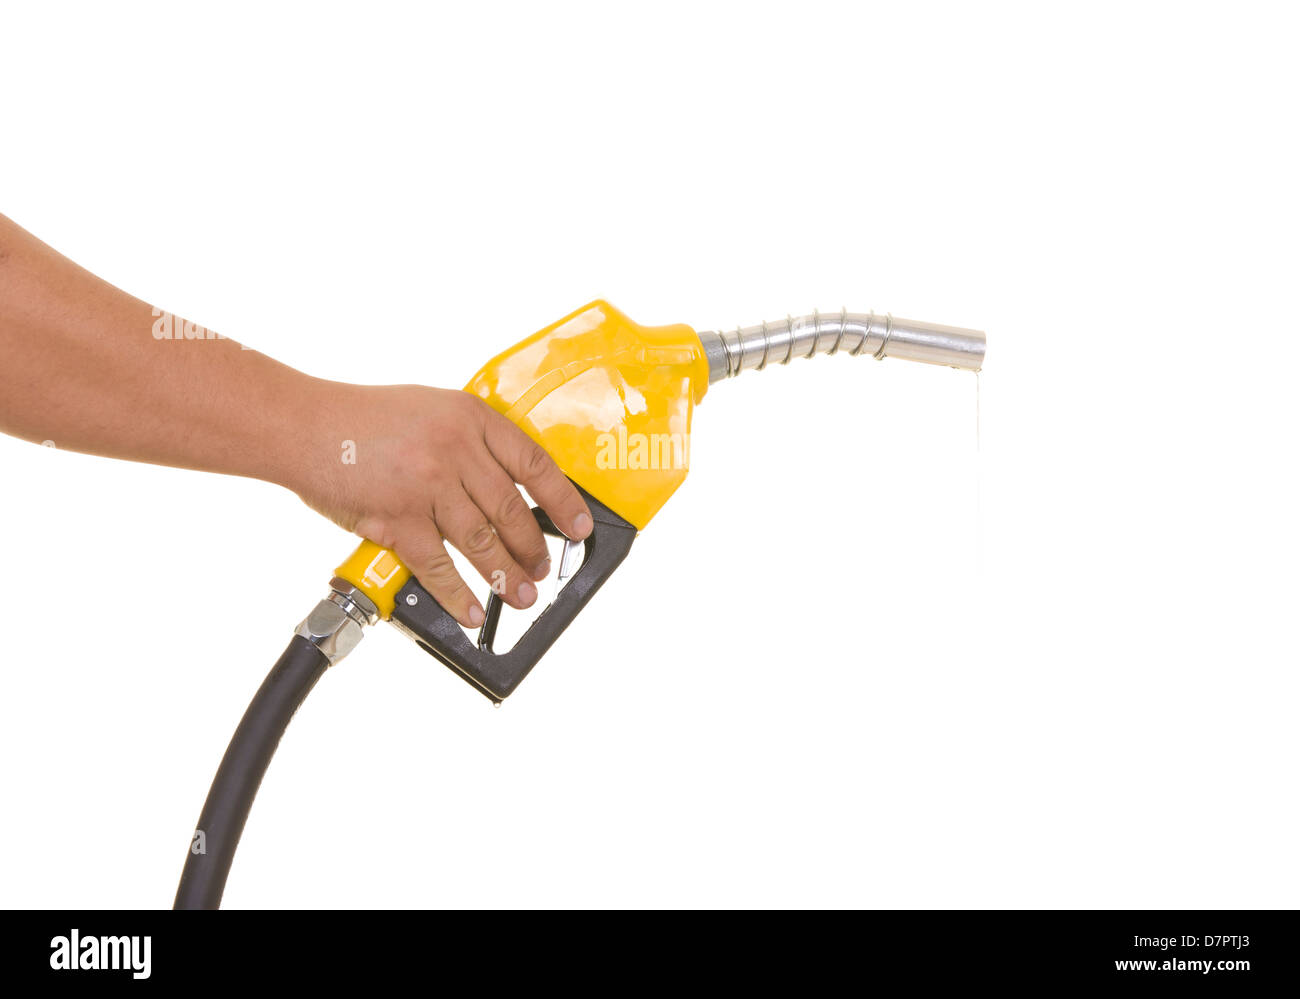 Male hand wasting gas with yellow pump isolated on white - Stock Image